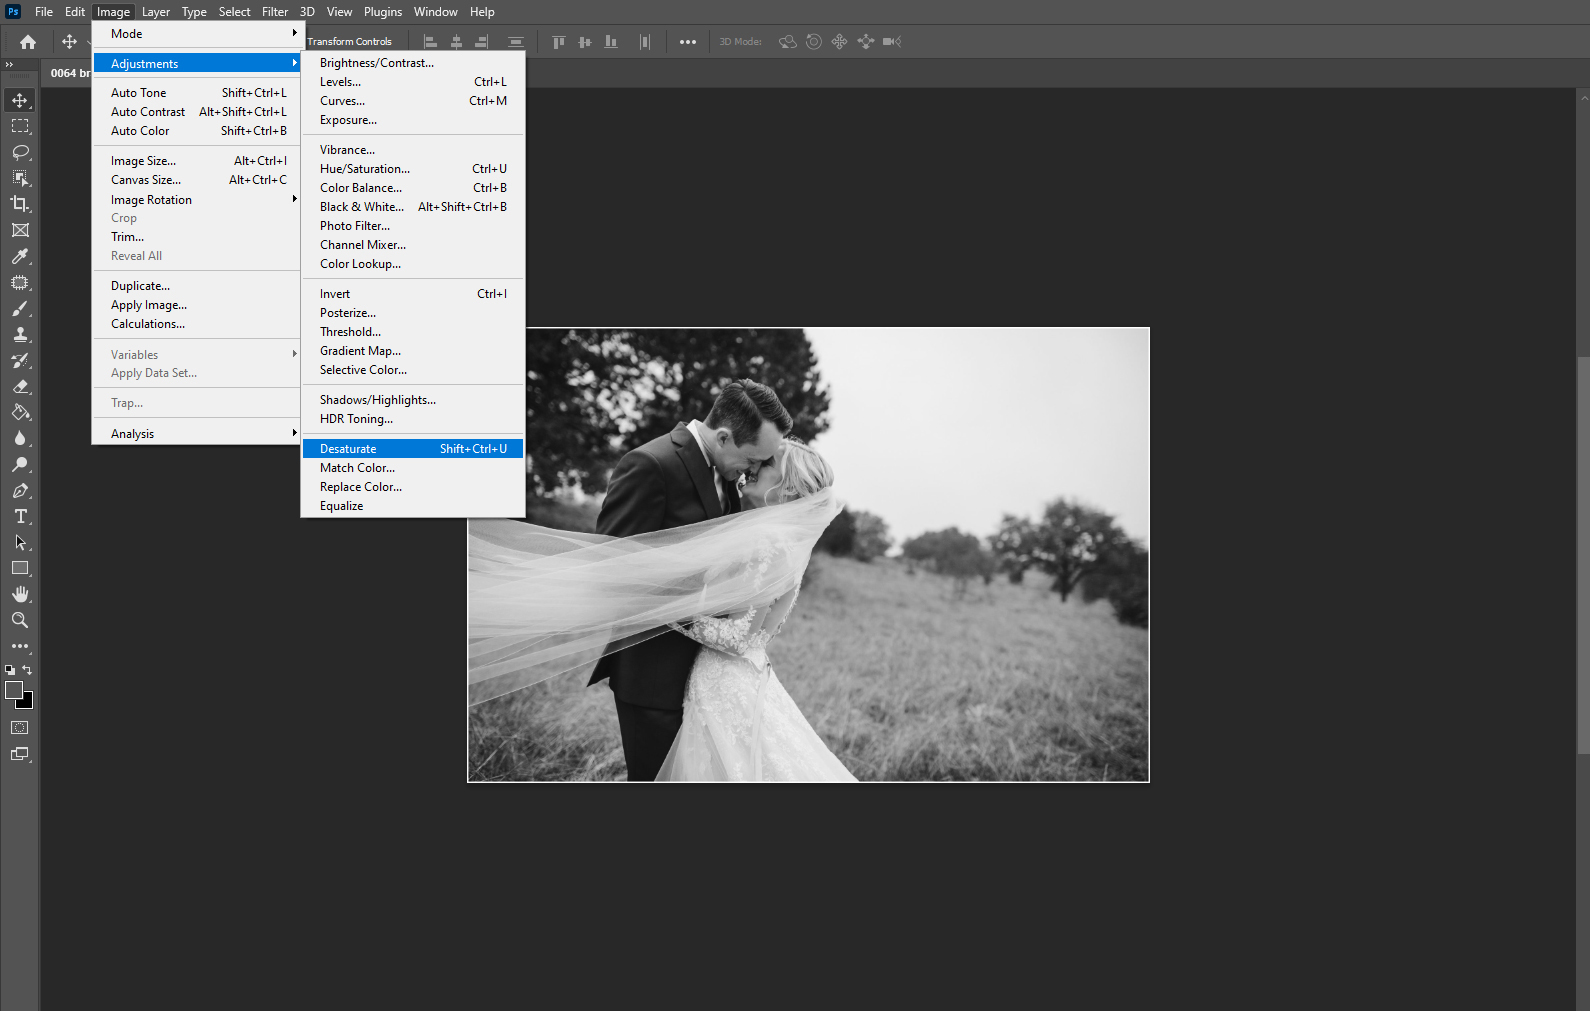 Converting the image to black and white in Photoshop